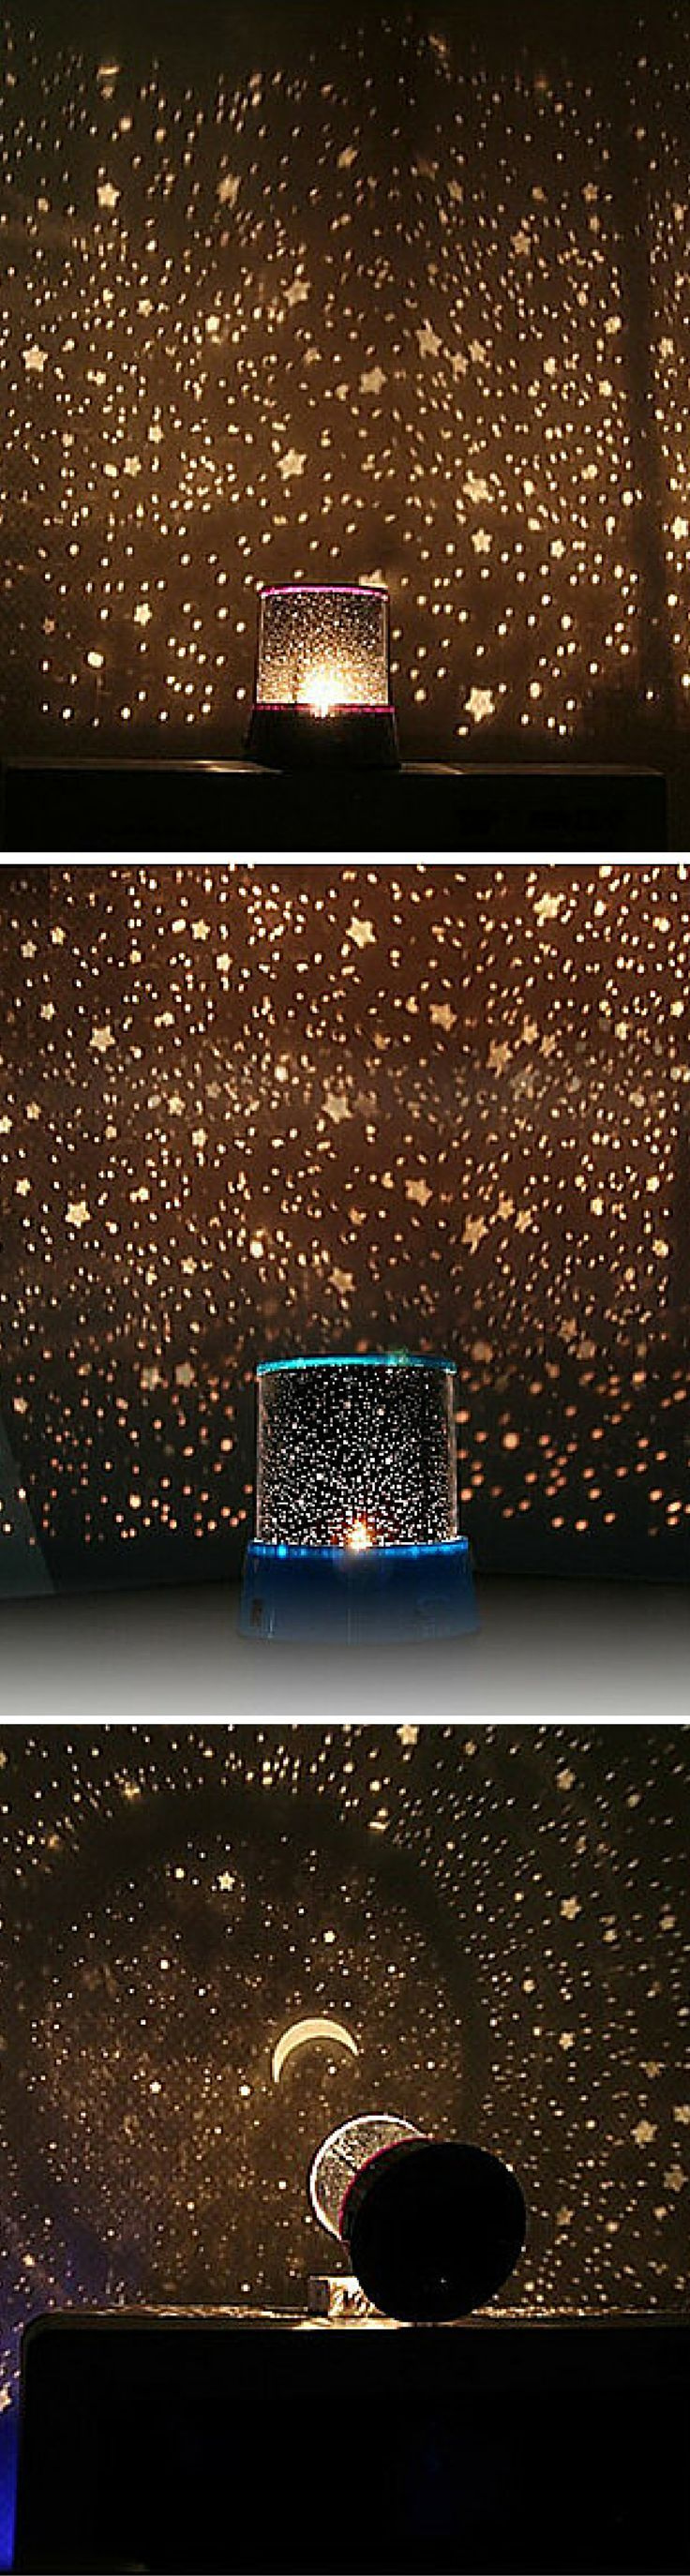 This LED star master night light revolving starry light projector with music, brings romance and more fun to your kids room, sure they will live this!